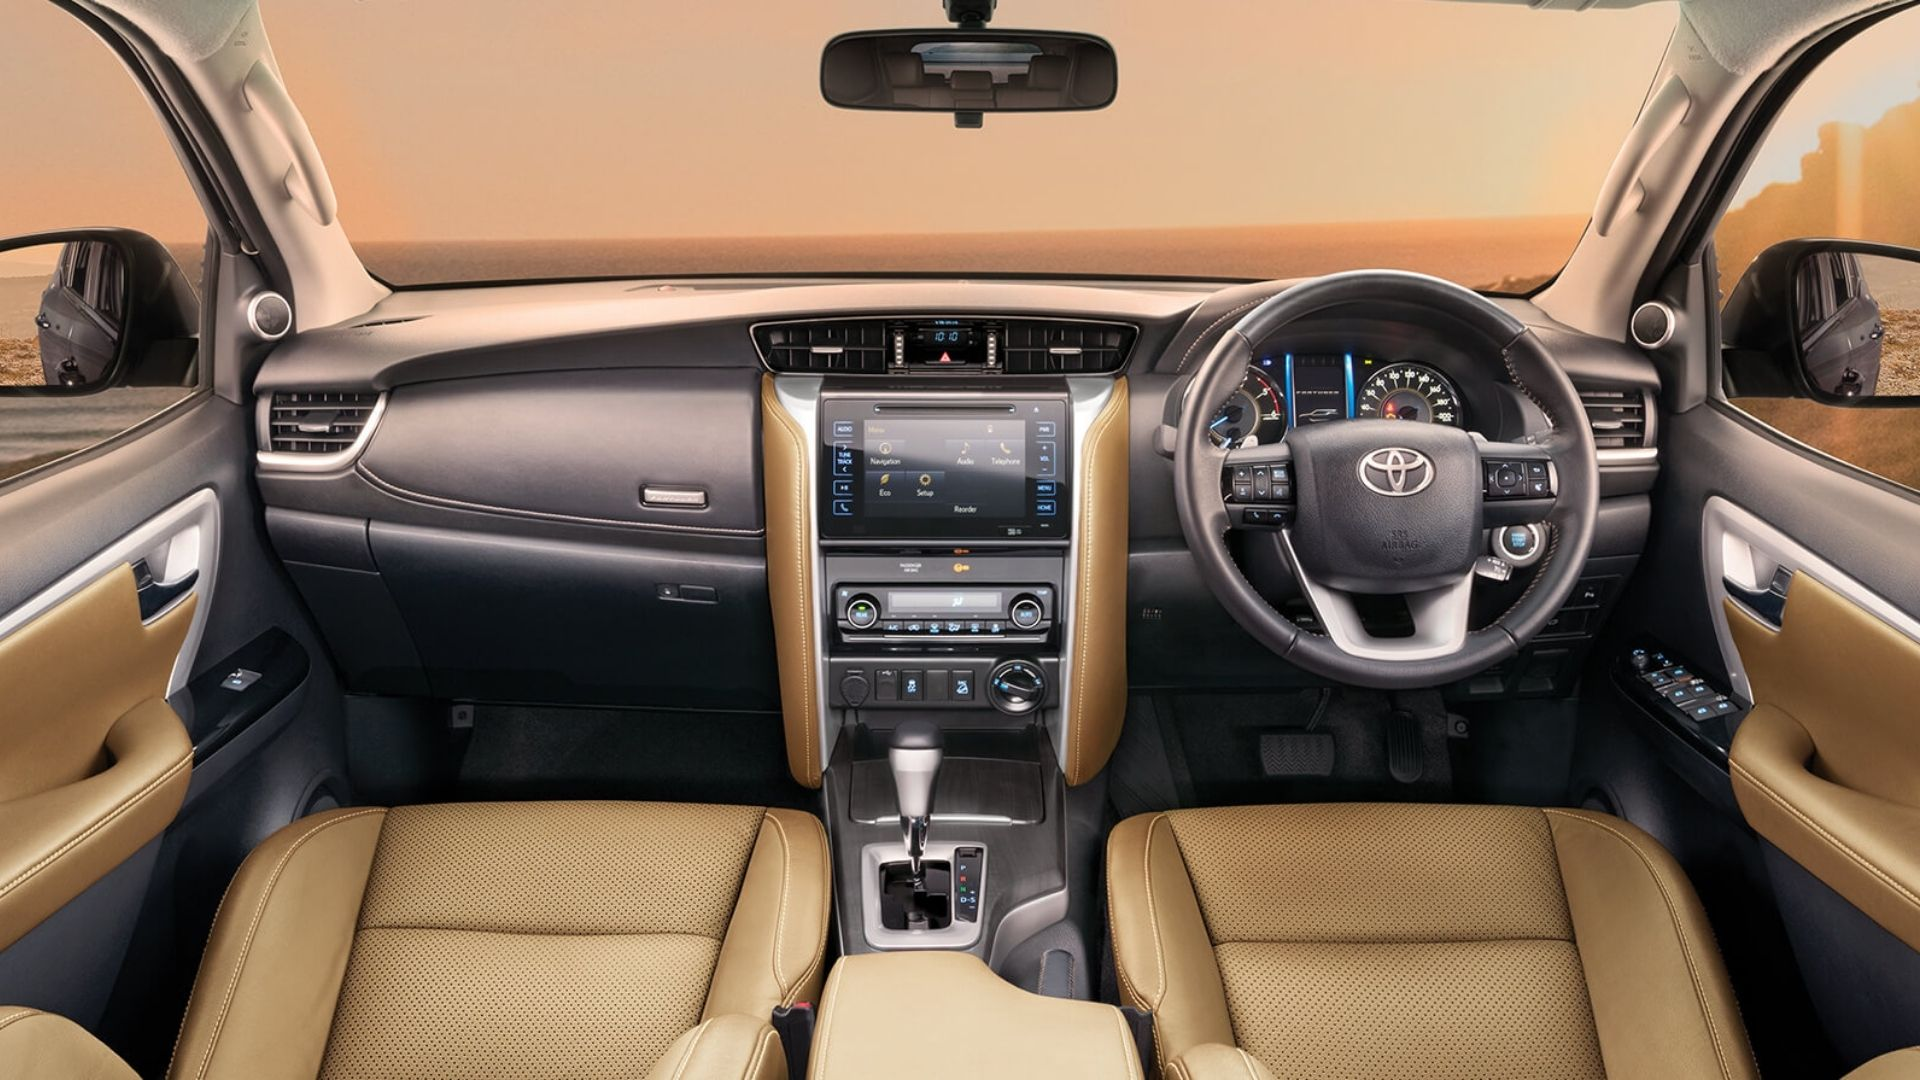 Toyota Fortuner Interior Features